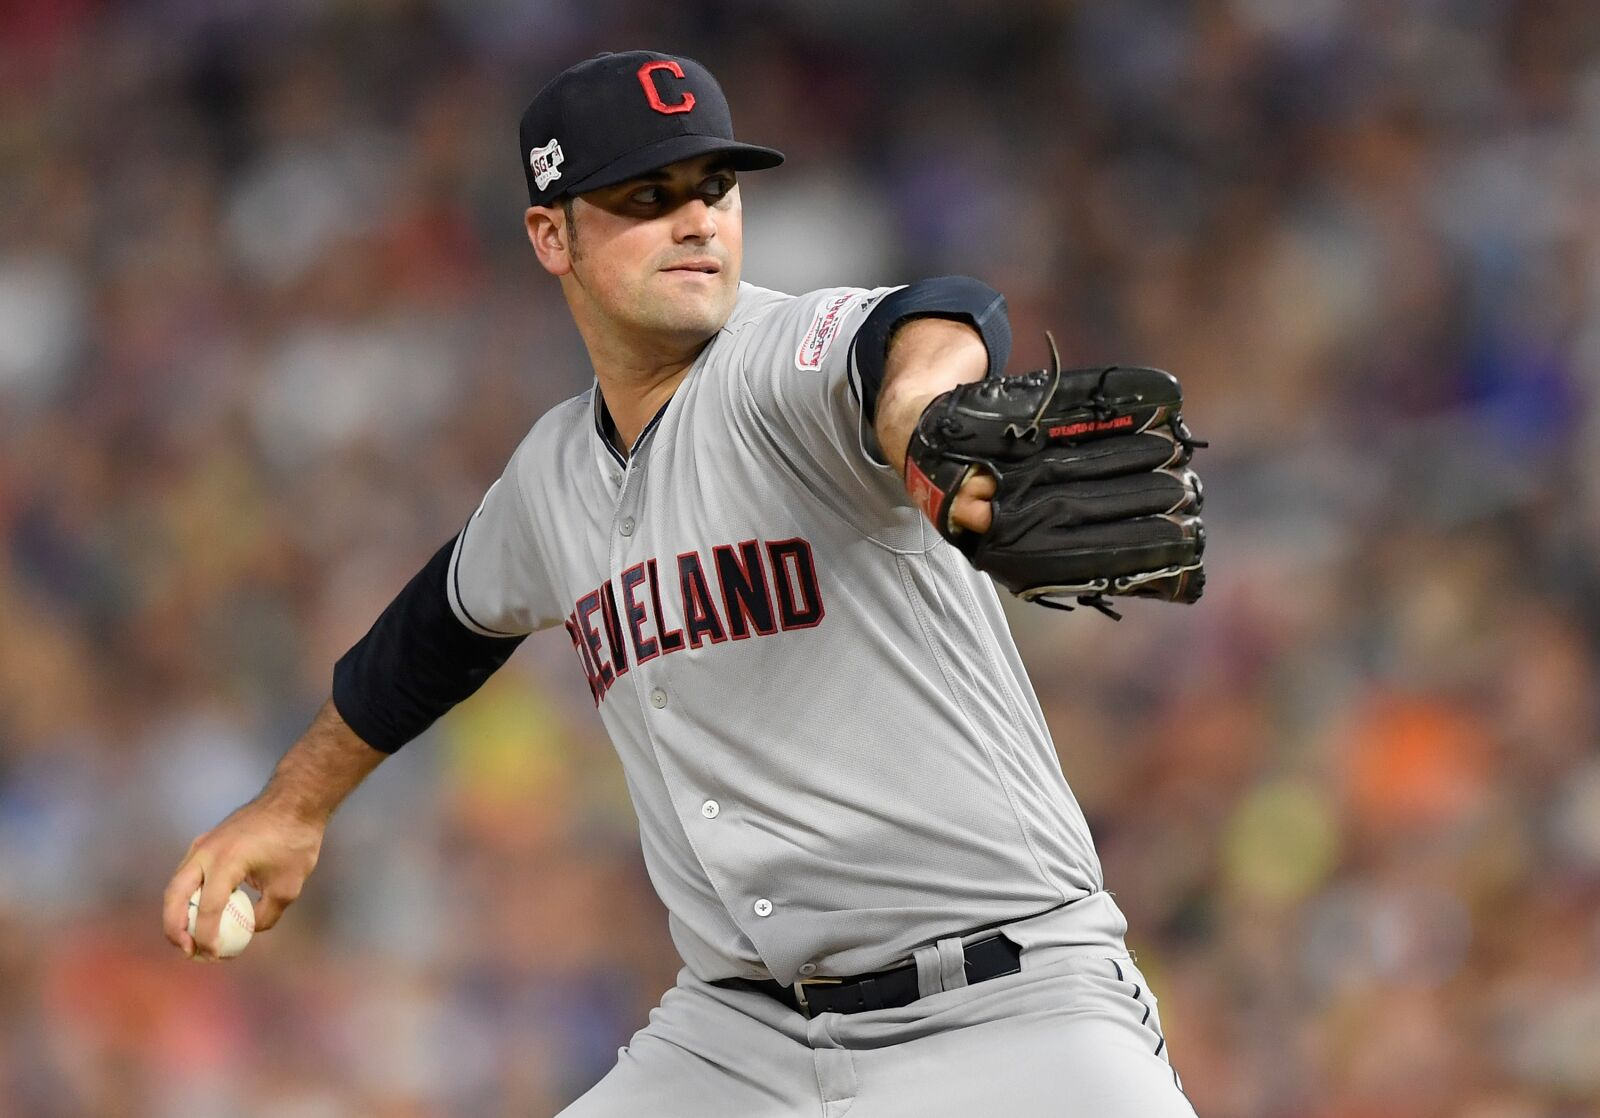 Cleveland Indians: Keeping up with the Wild Card chase